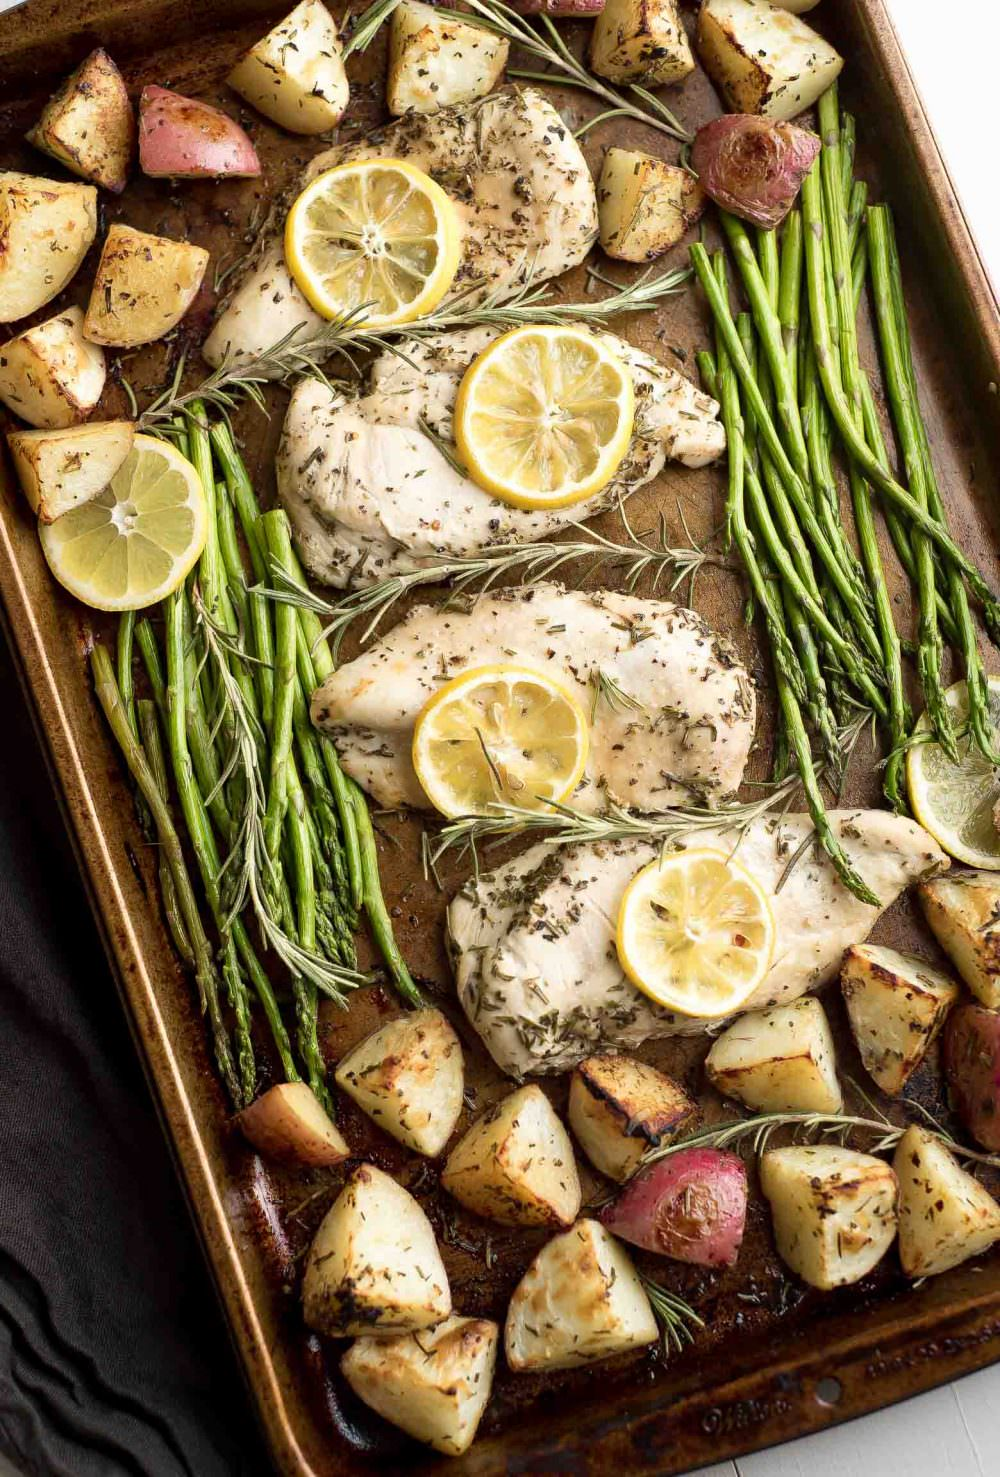 Healthy Lemon Rosemary Chicken Sheet Pan Dinner with Roasted Potatoes {Recipes, Low Carb, Easy Meals, Veggies, Ovens, Suppers Roasted Potatoes}